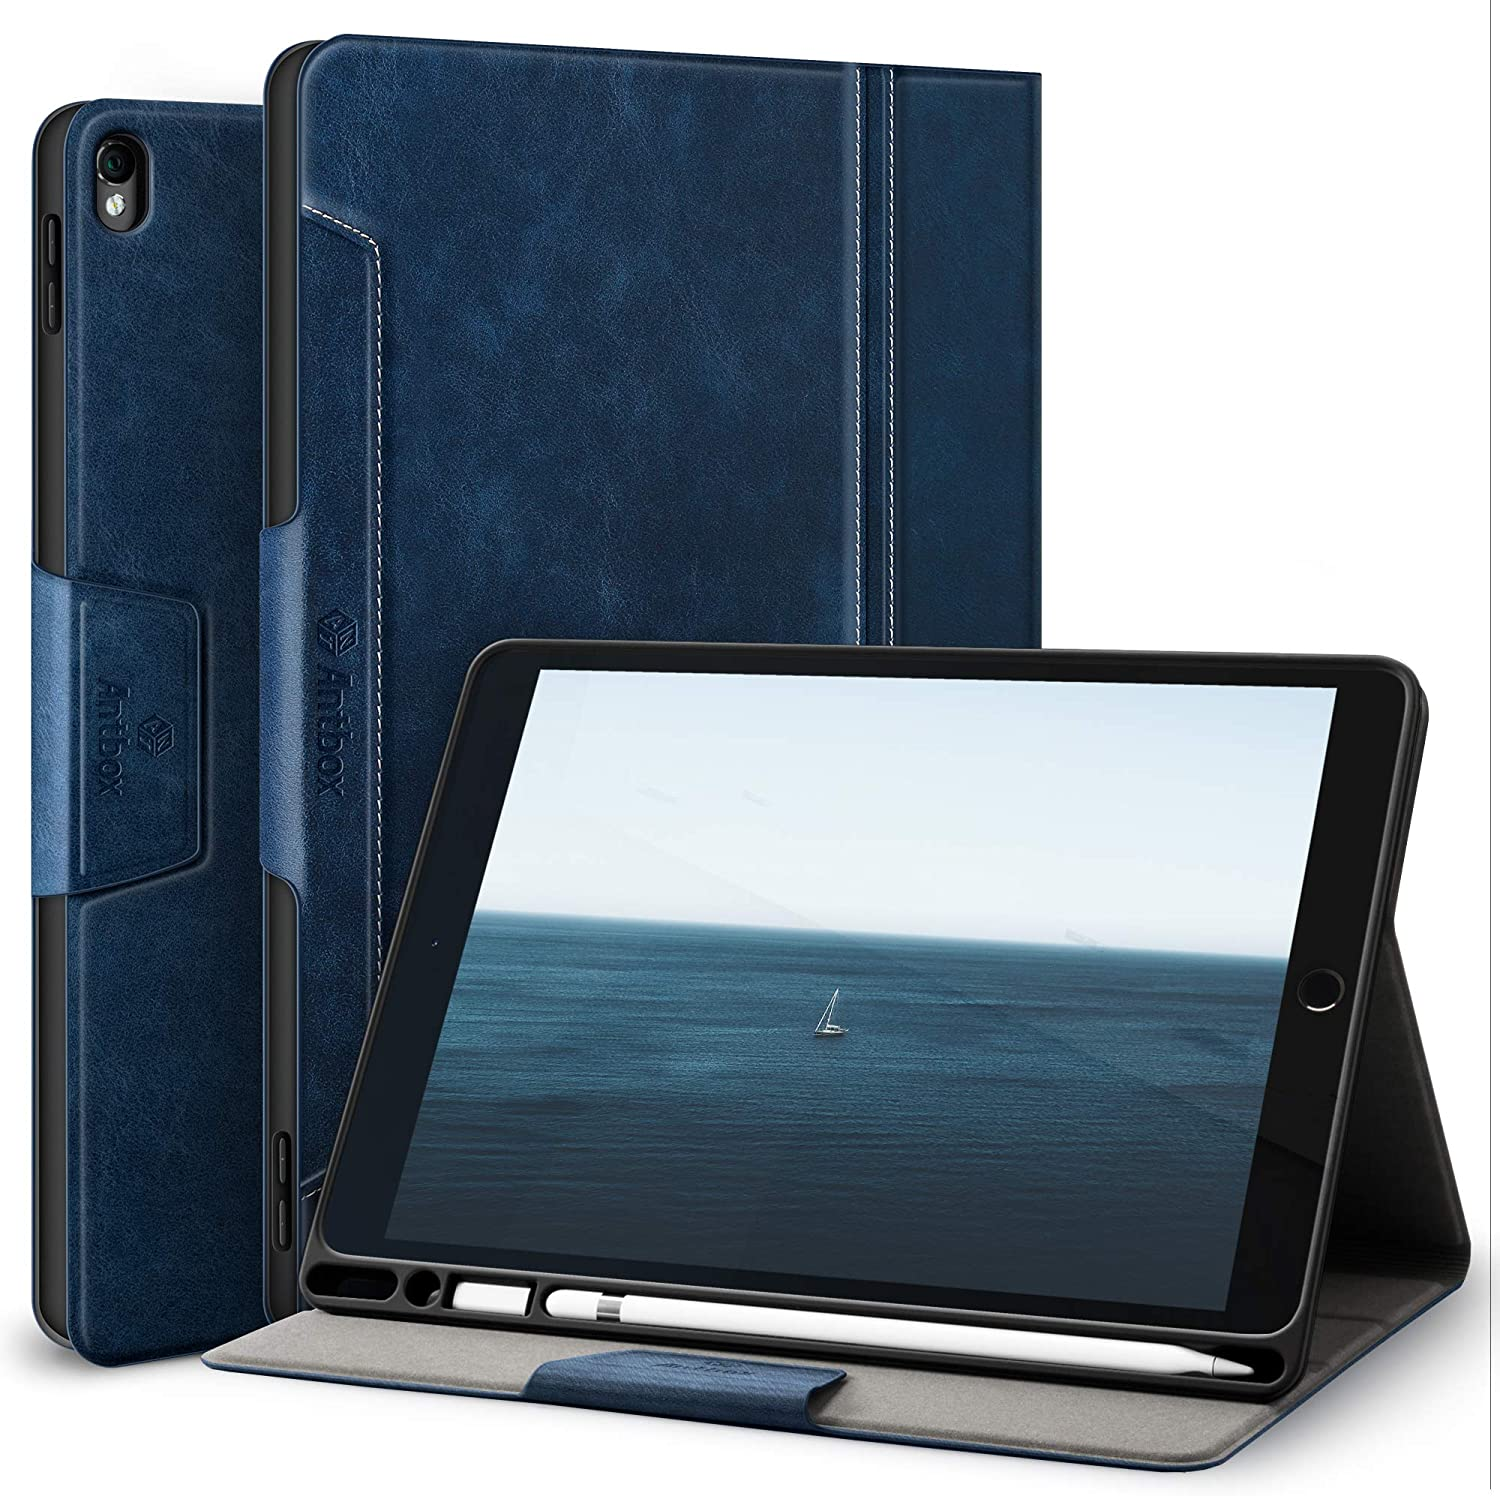 Antbox iPad 10.5 Case with Built-in Apple Pencil Holder Auto Sleep / Wake Function PU Leather Smart Cover for iPad Air 3 2019 / iPad Pro 10.5 inch 2017 (Blue)